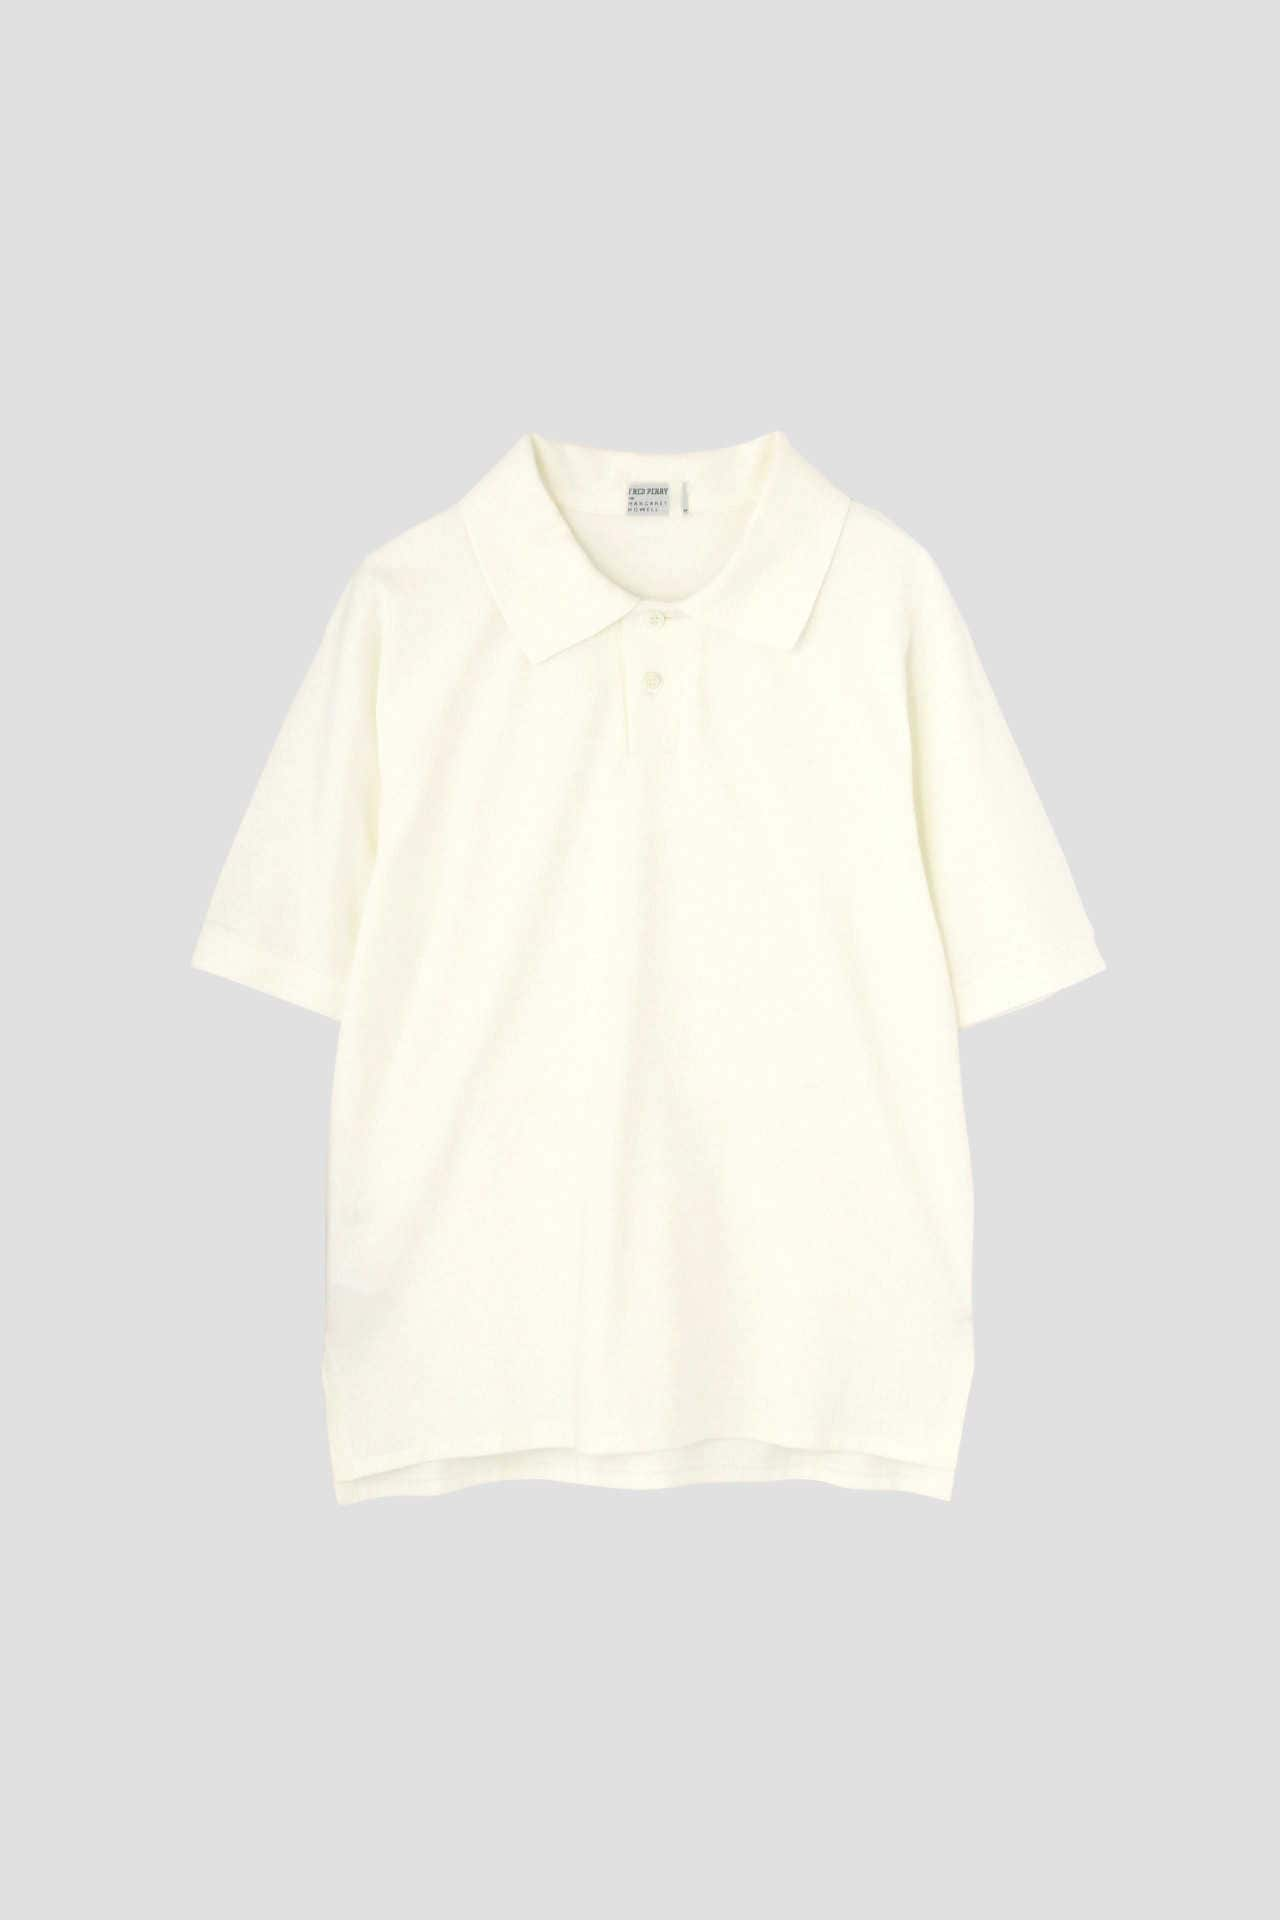 SOFT COTTON PIQUE(FRED PERRY FOR MARGARET HOWELL)